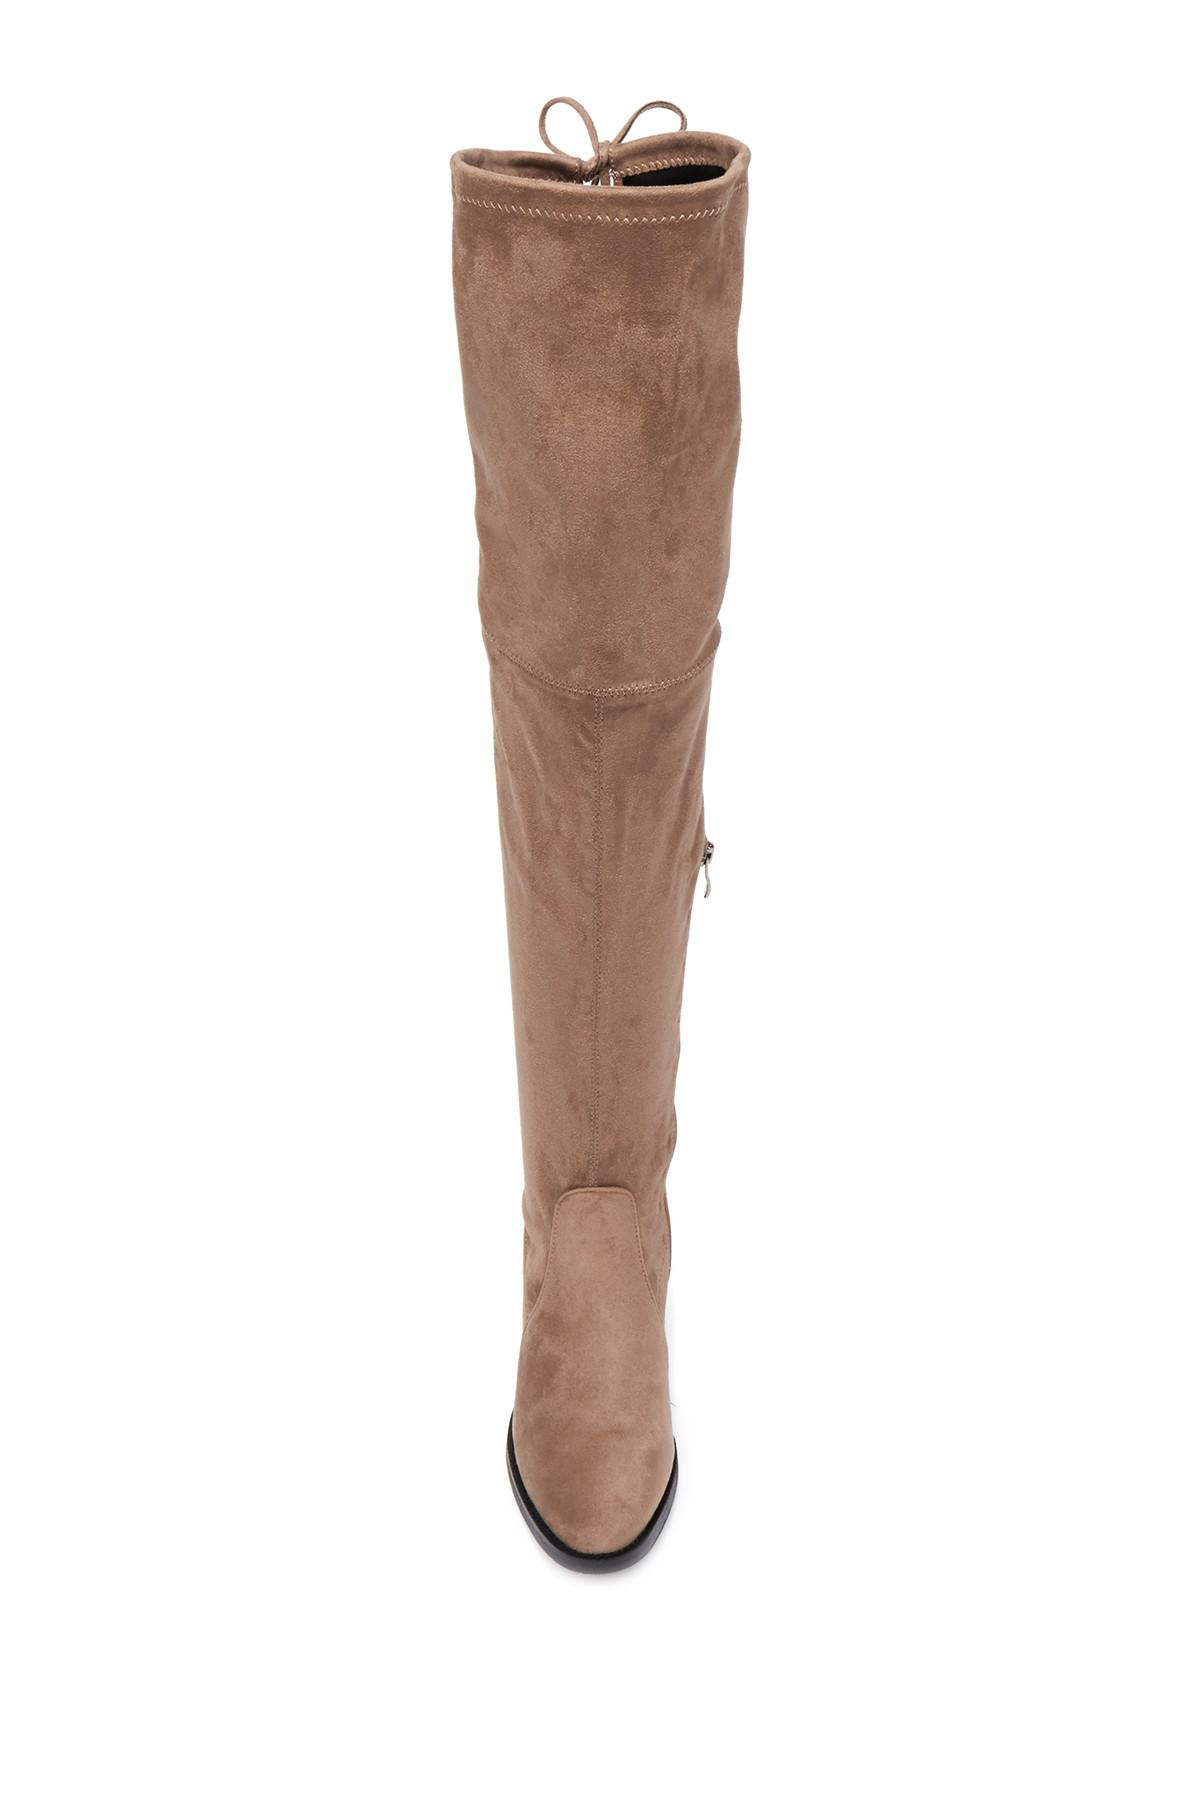 e5f816320e6 Lyst - Catherine Malandrino Perse Embellished Over-the-knee Boot in ...